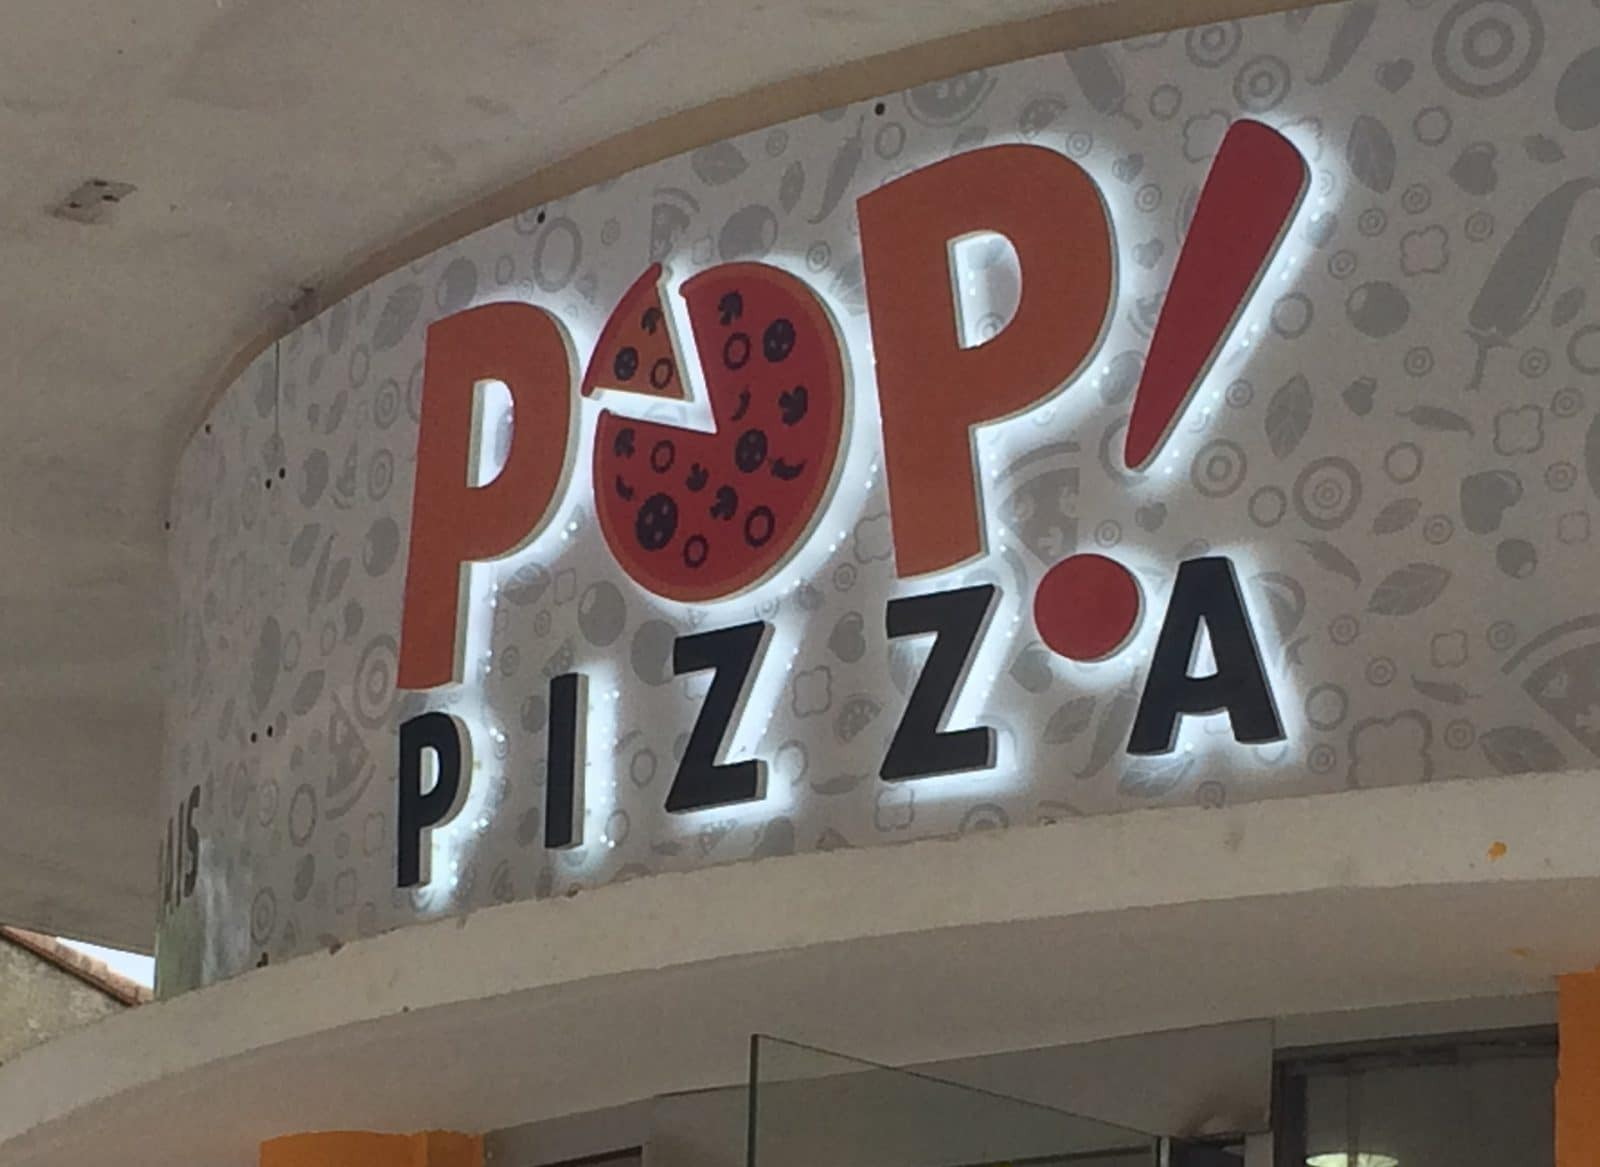 Pop PIzza